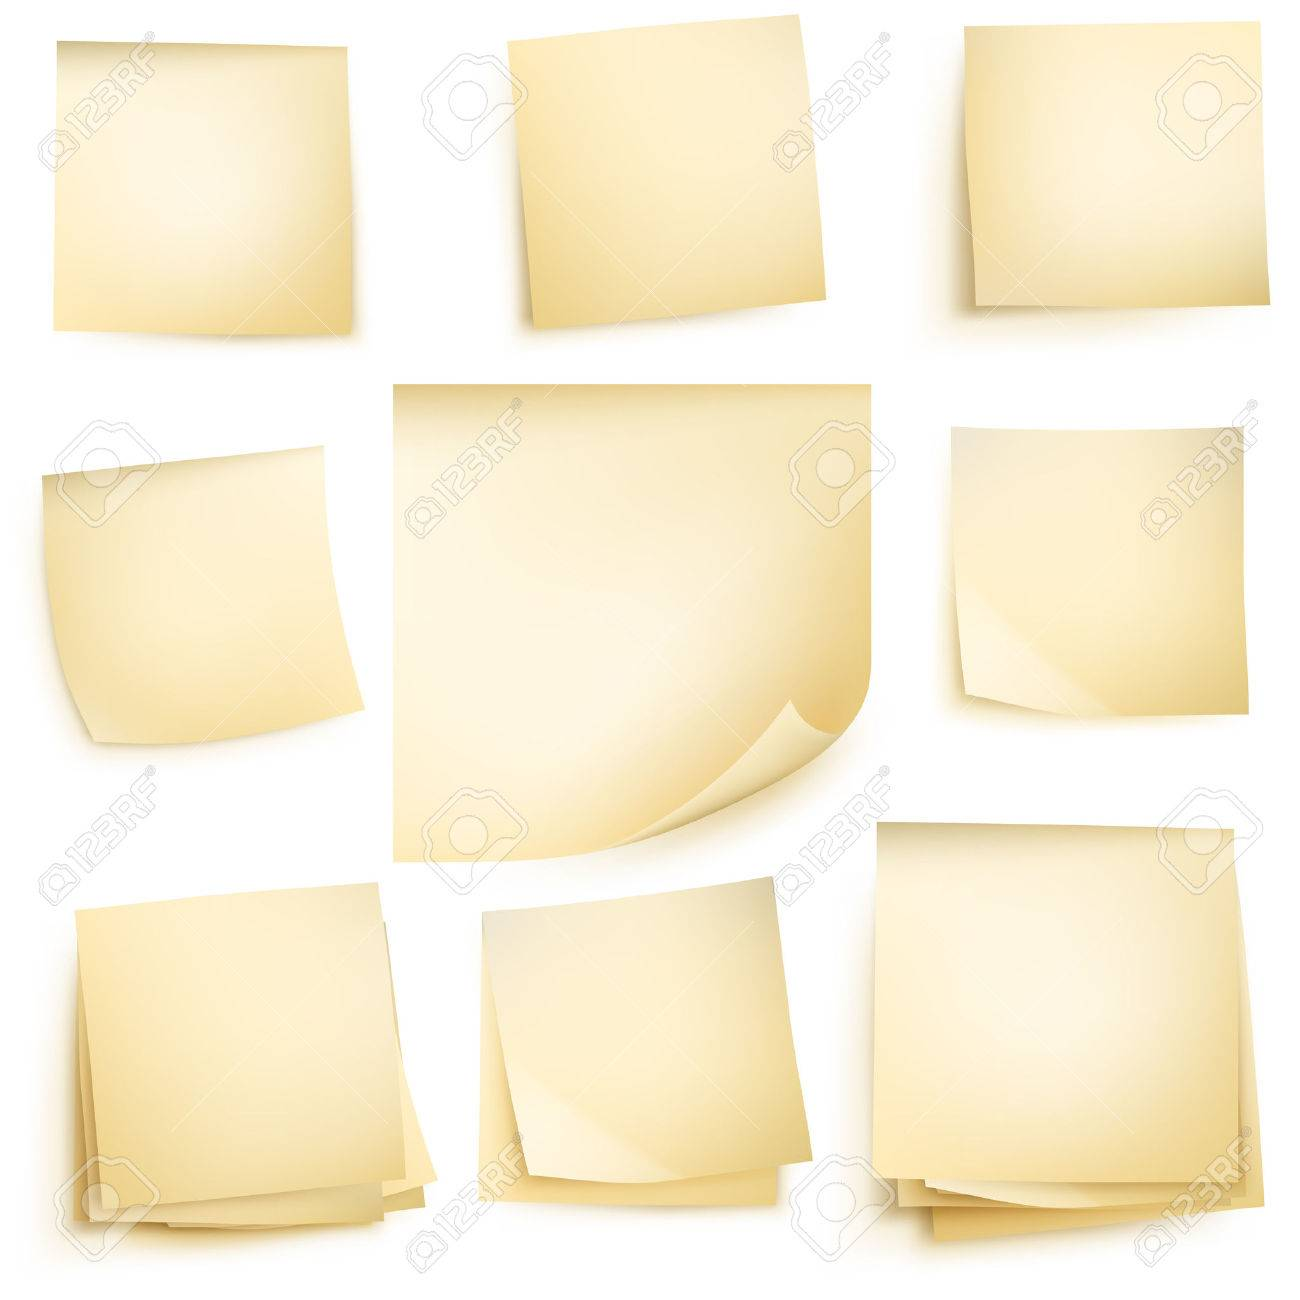 Post it notes isolated on white background. vector file included - 40103616